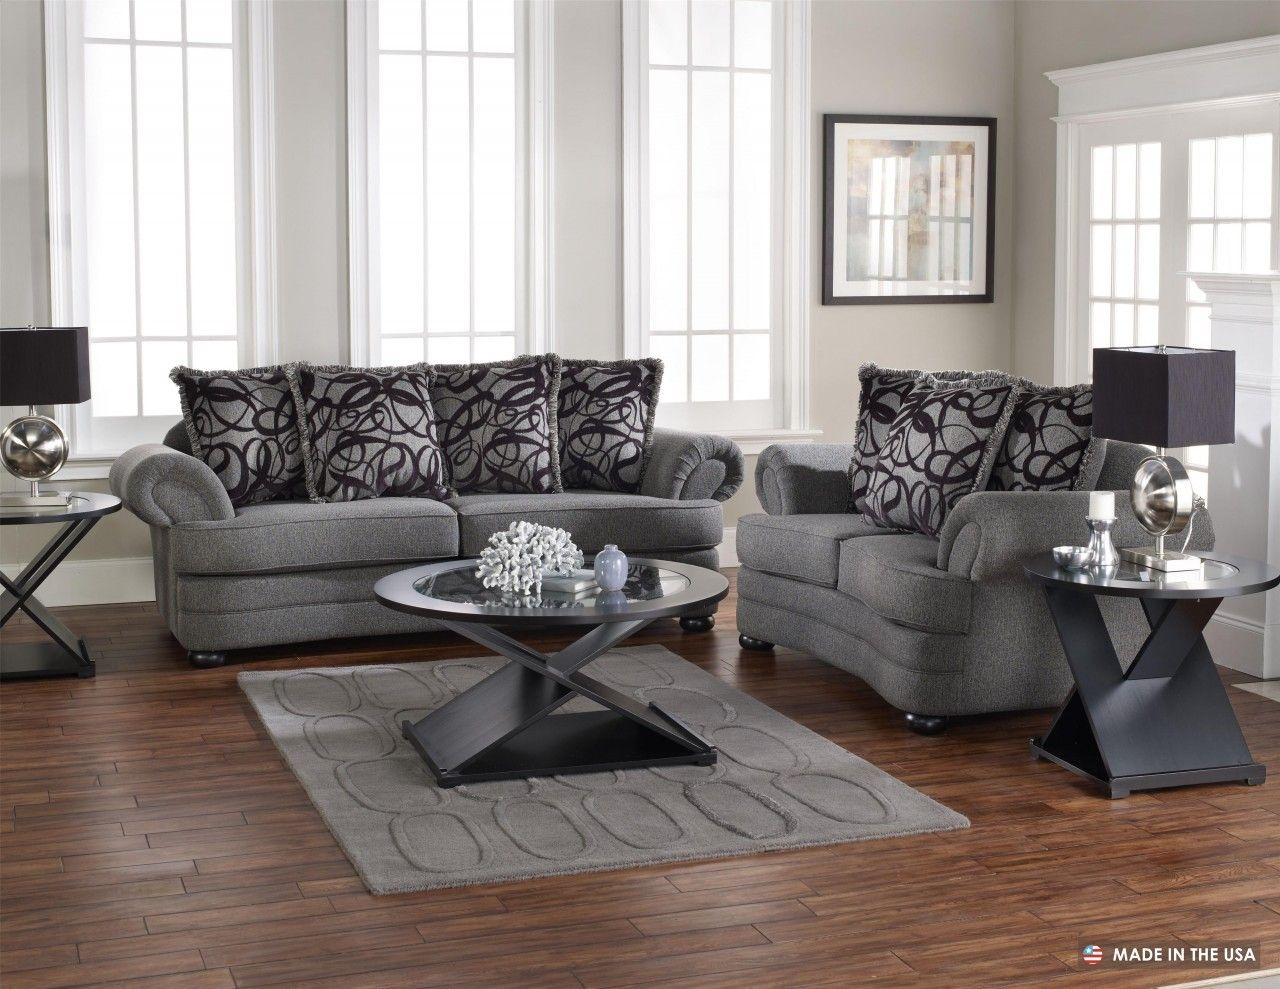 Wonderful Living Room Design With Grey Sofa Set And Grey Cushion Patterned  Also Unique Round Coffee Part 34